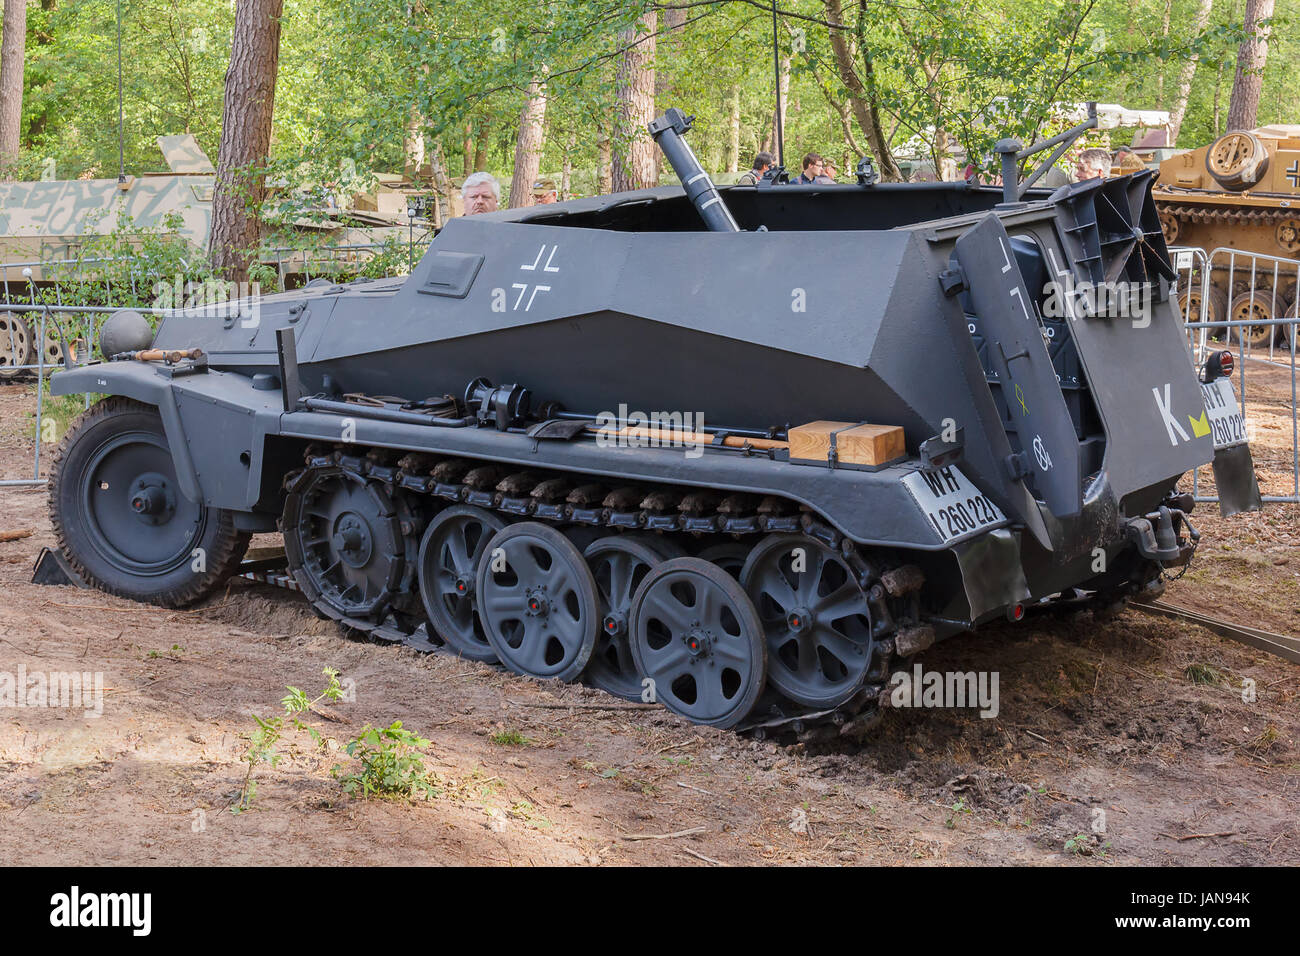 Sd.Kfz. 251/2 with mortar at Militracks event - Stock Image